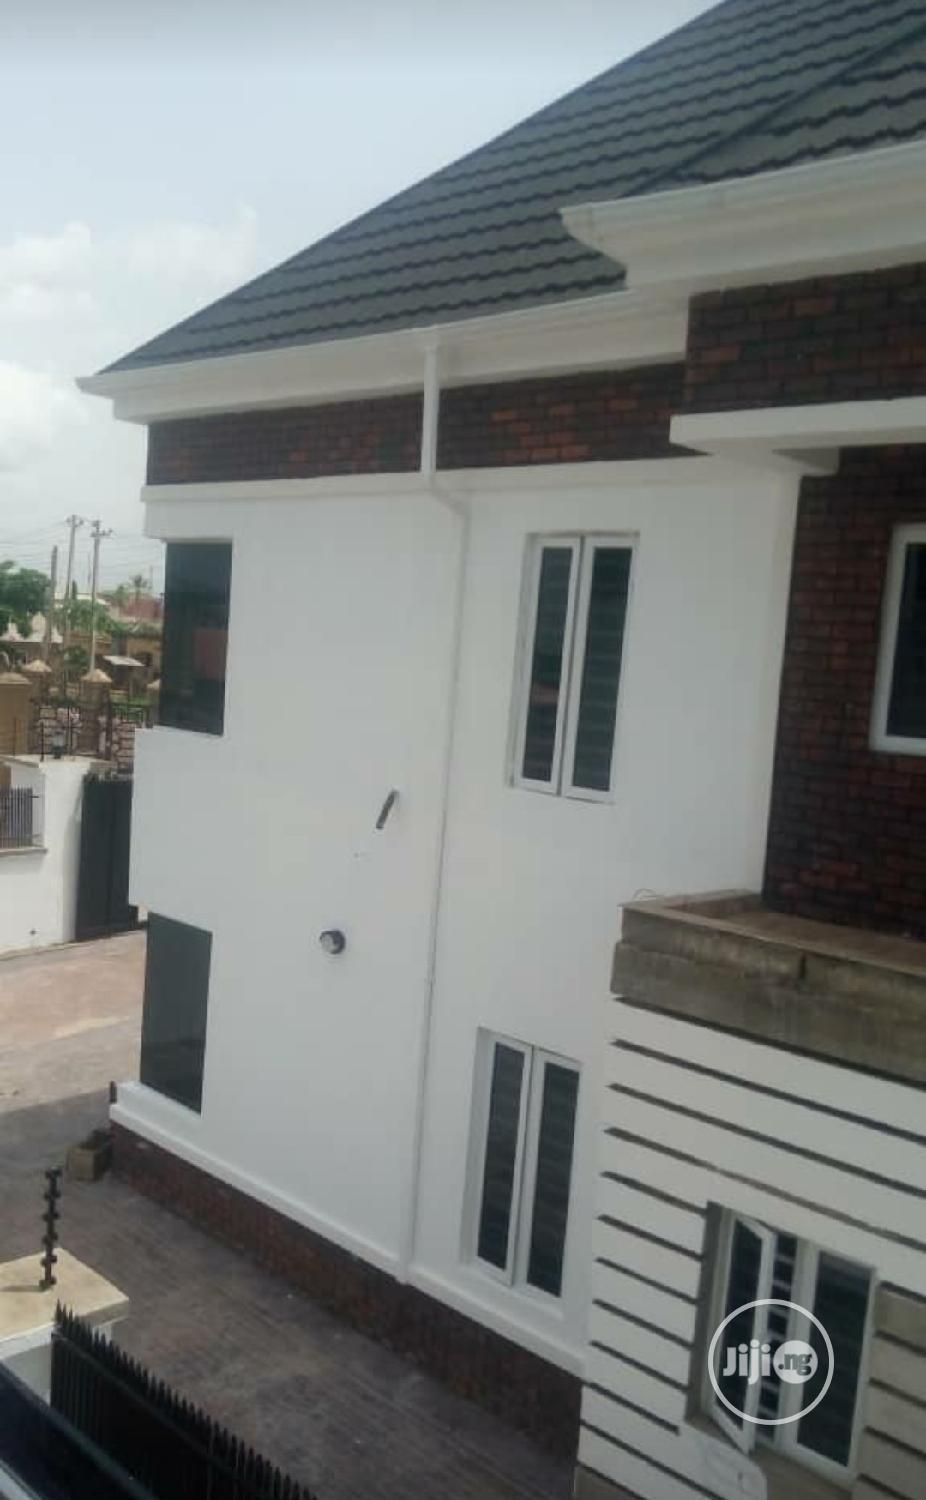 4 Bedrooms Duplex At Oluyole Estate | Houses & Apartments For Sale for sale in Oluyole Estate, Ibadan, Nigeria